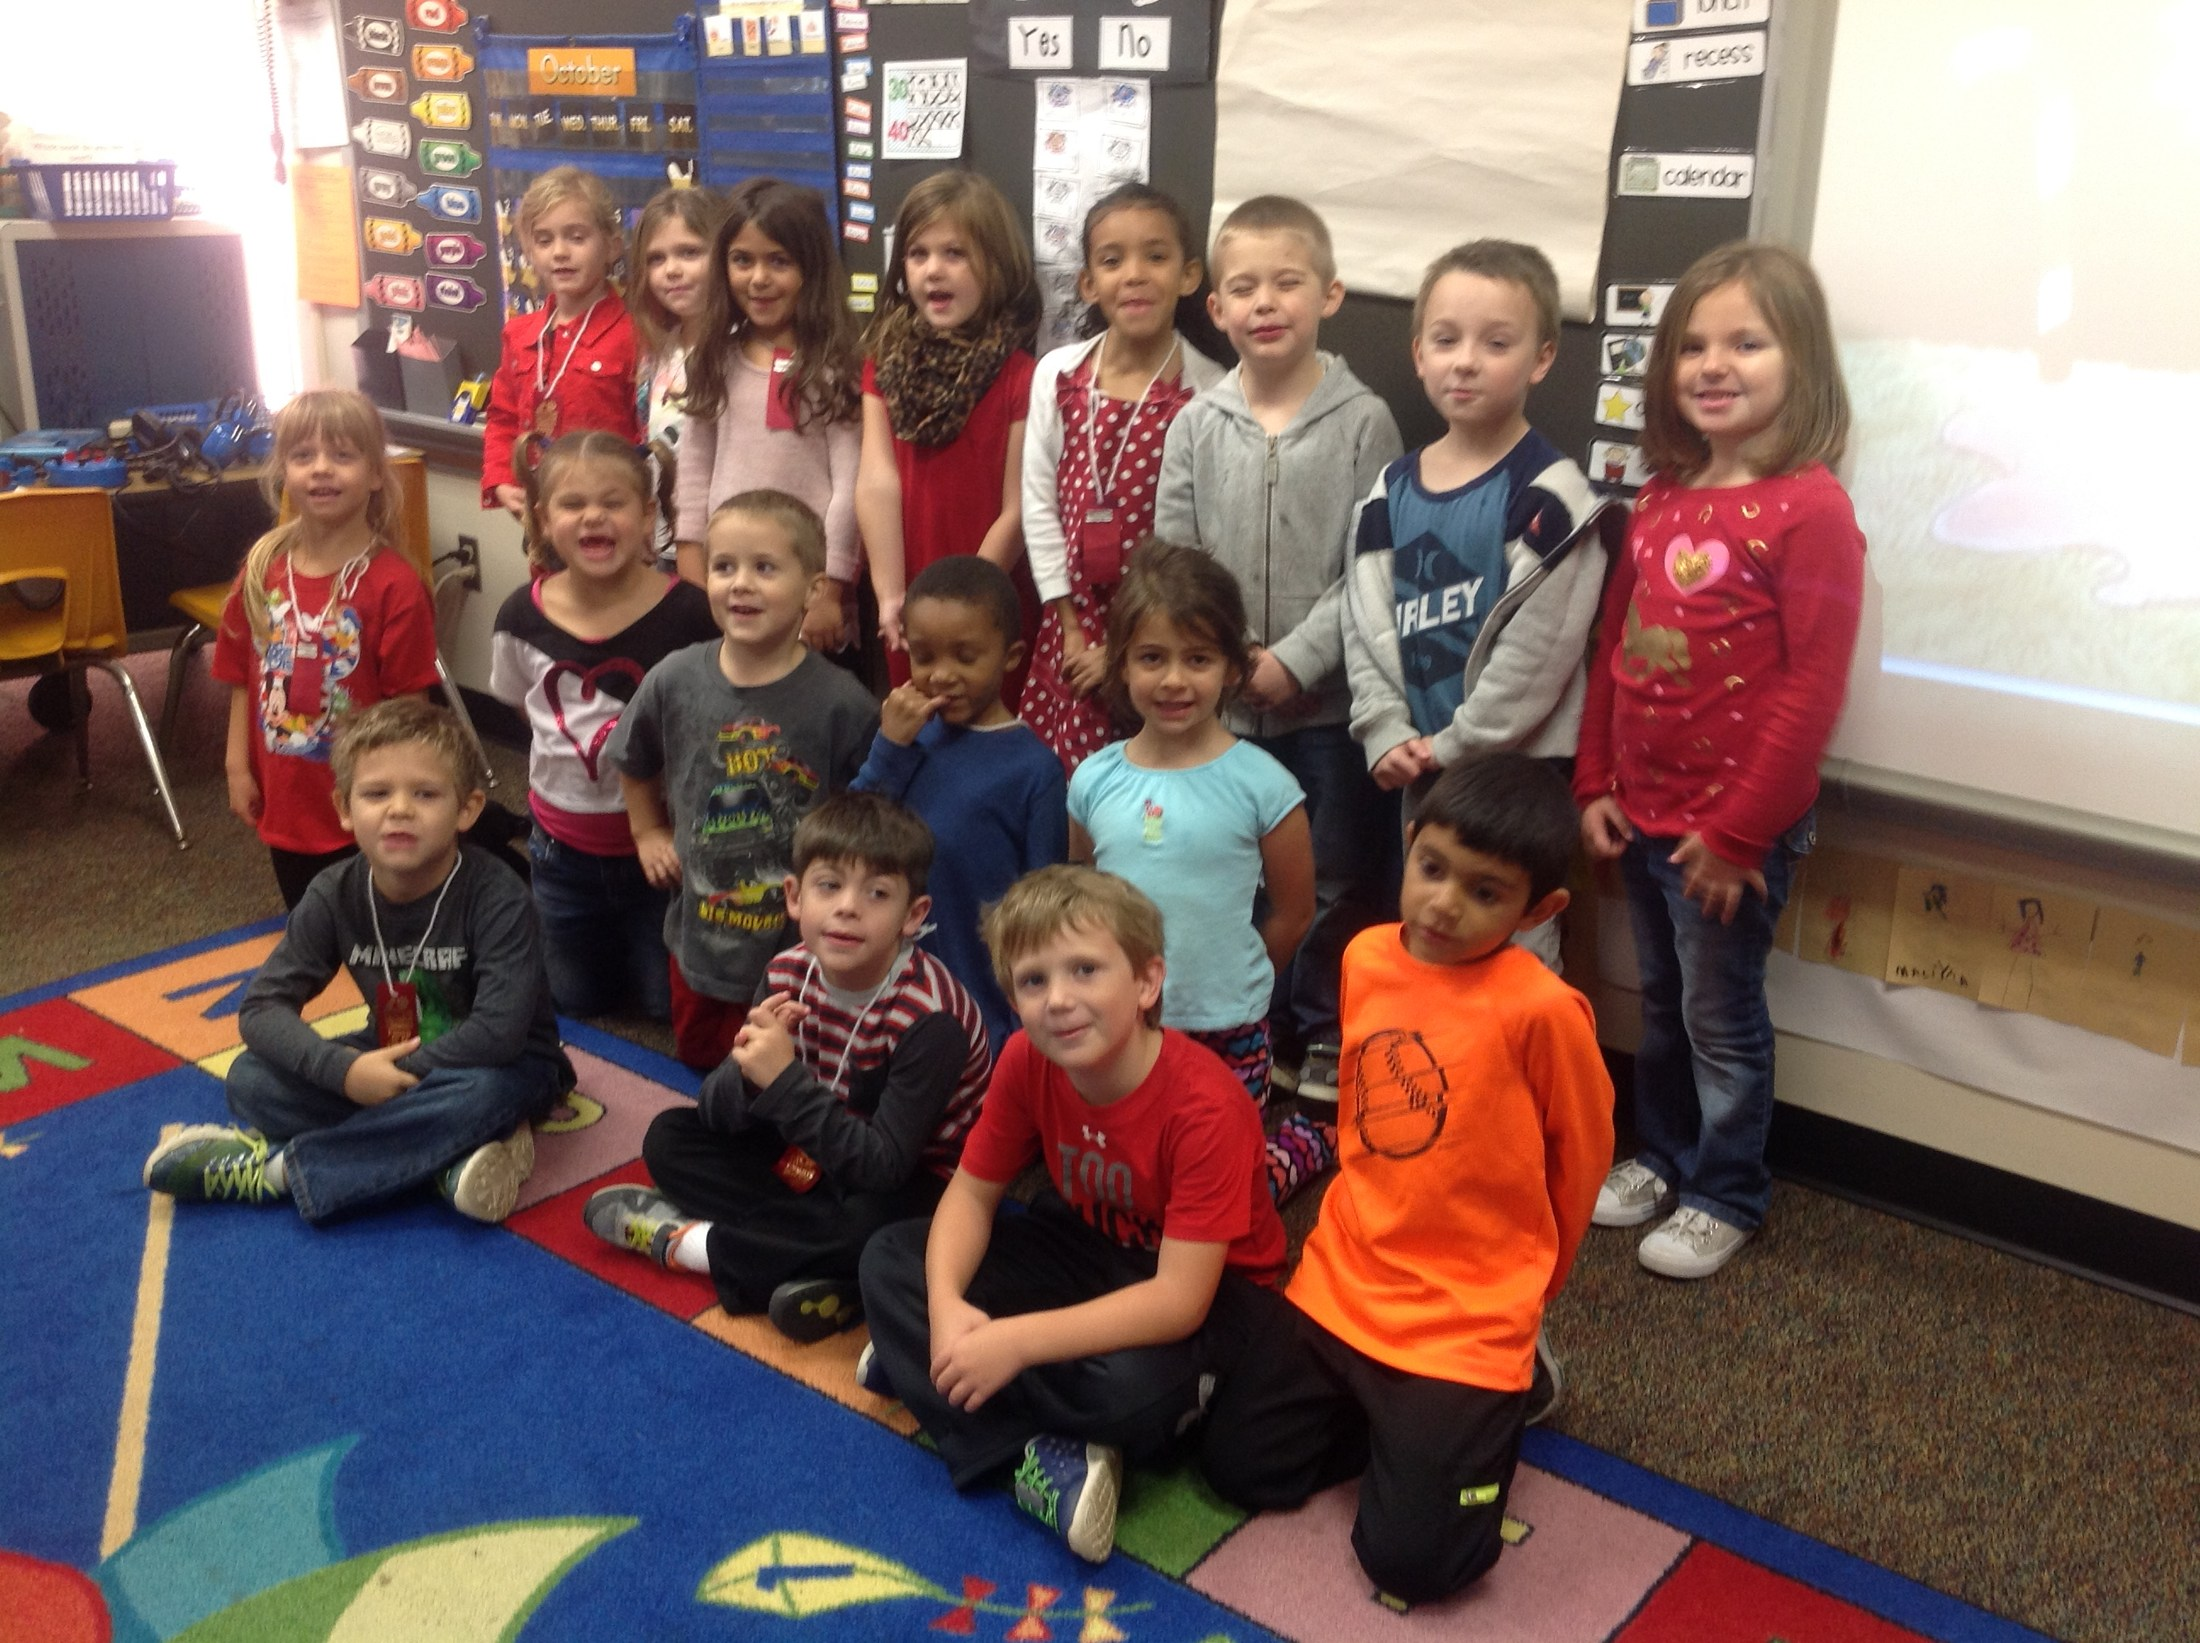 A group of diverse students wear read in support of red ribbon week.